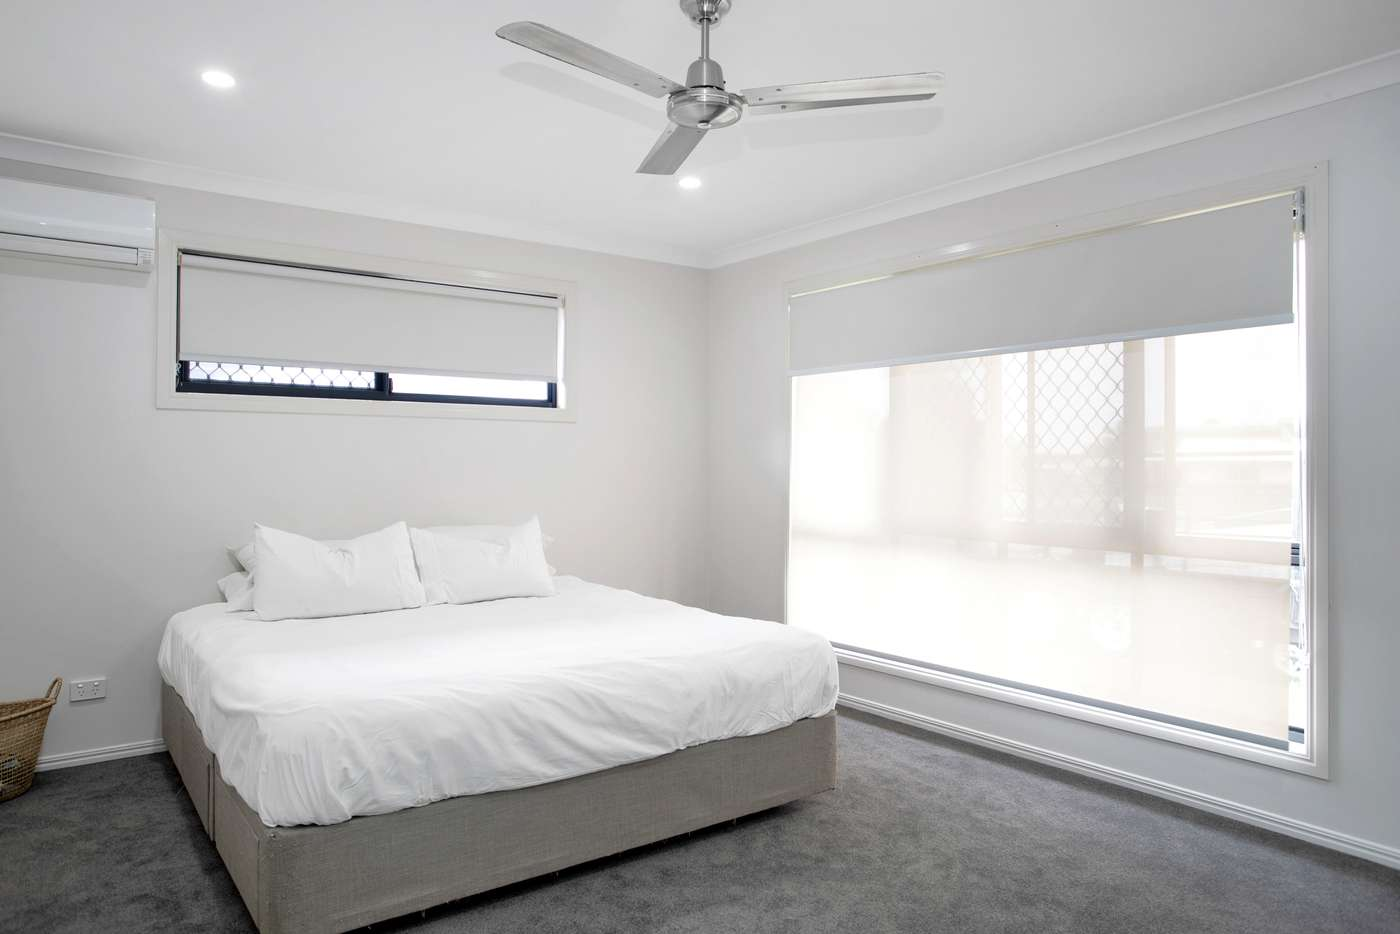 Seventh view of Homely house listing, 117 Oldmill Drive, Beaconsfield QLD 4740